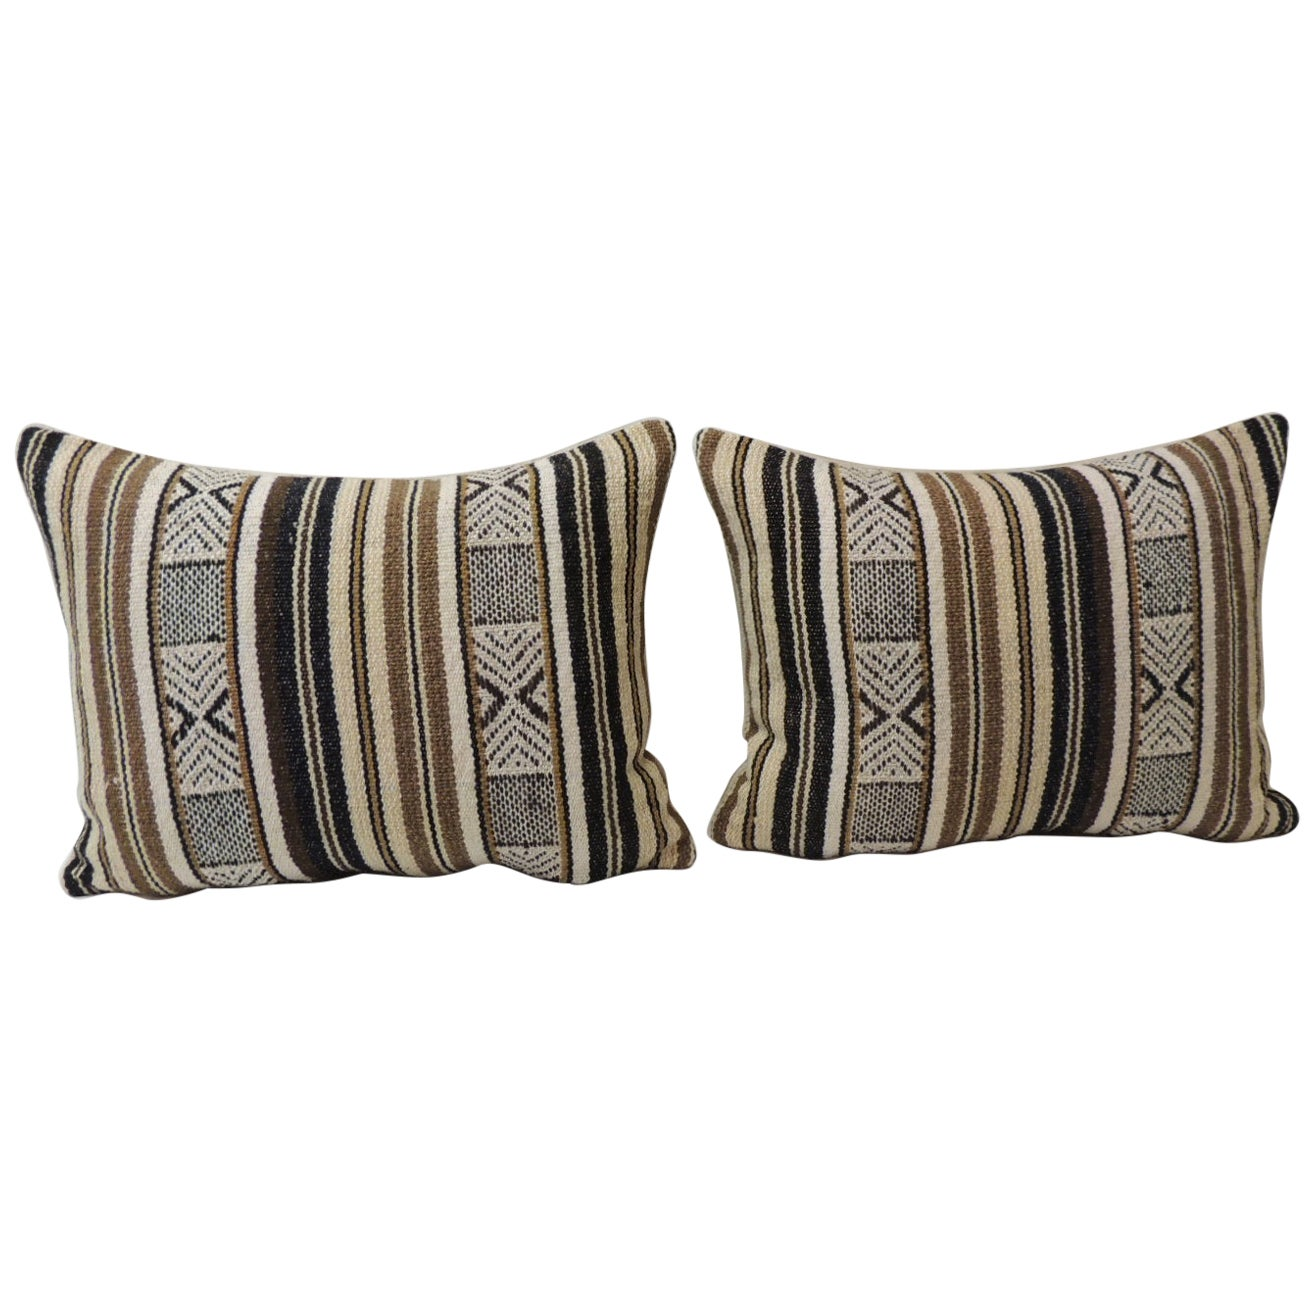 Pair of Black and Brown Woven Bolster Decorative Pillows